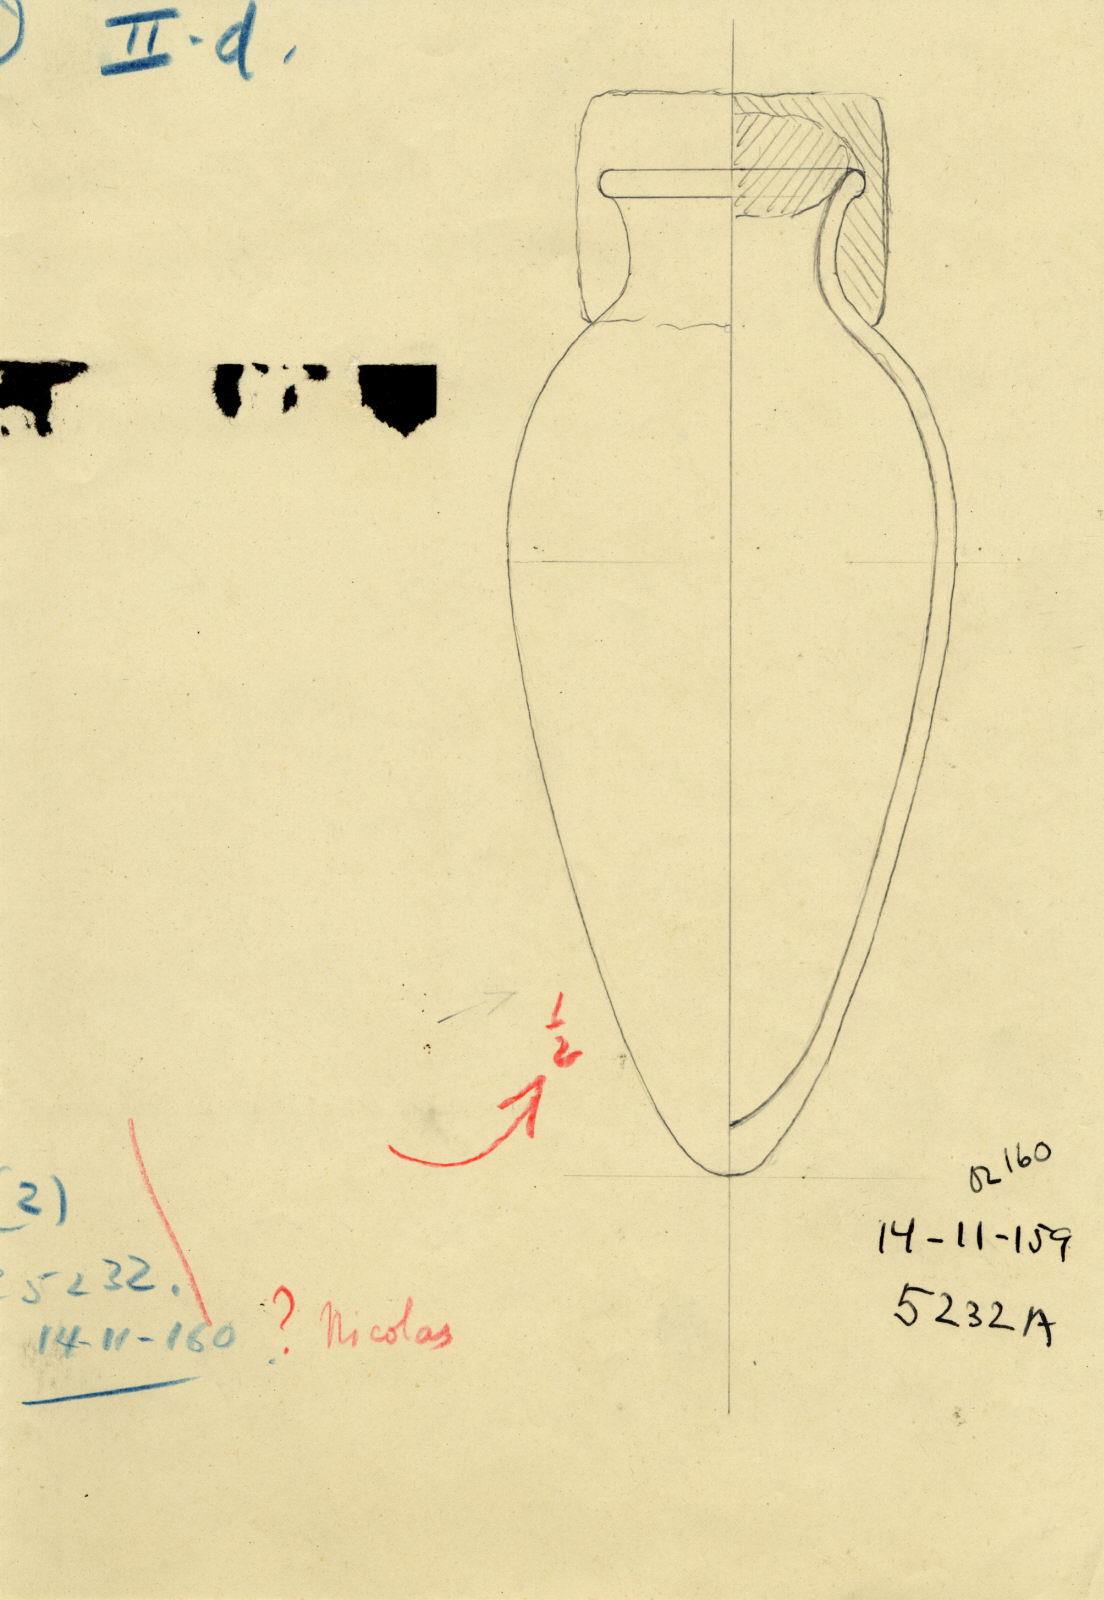 Drawings: G 5232, Shaft A: pottery, jar with stopper